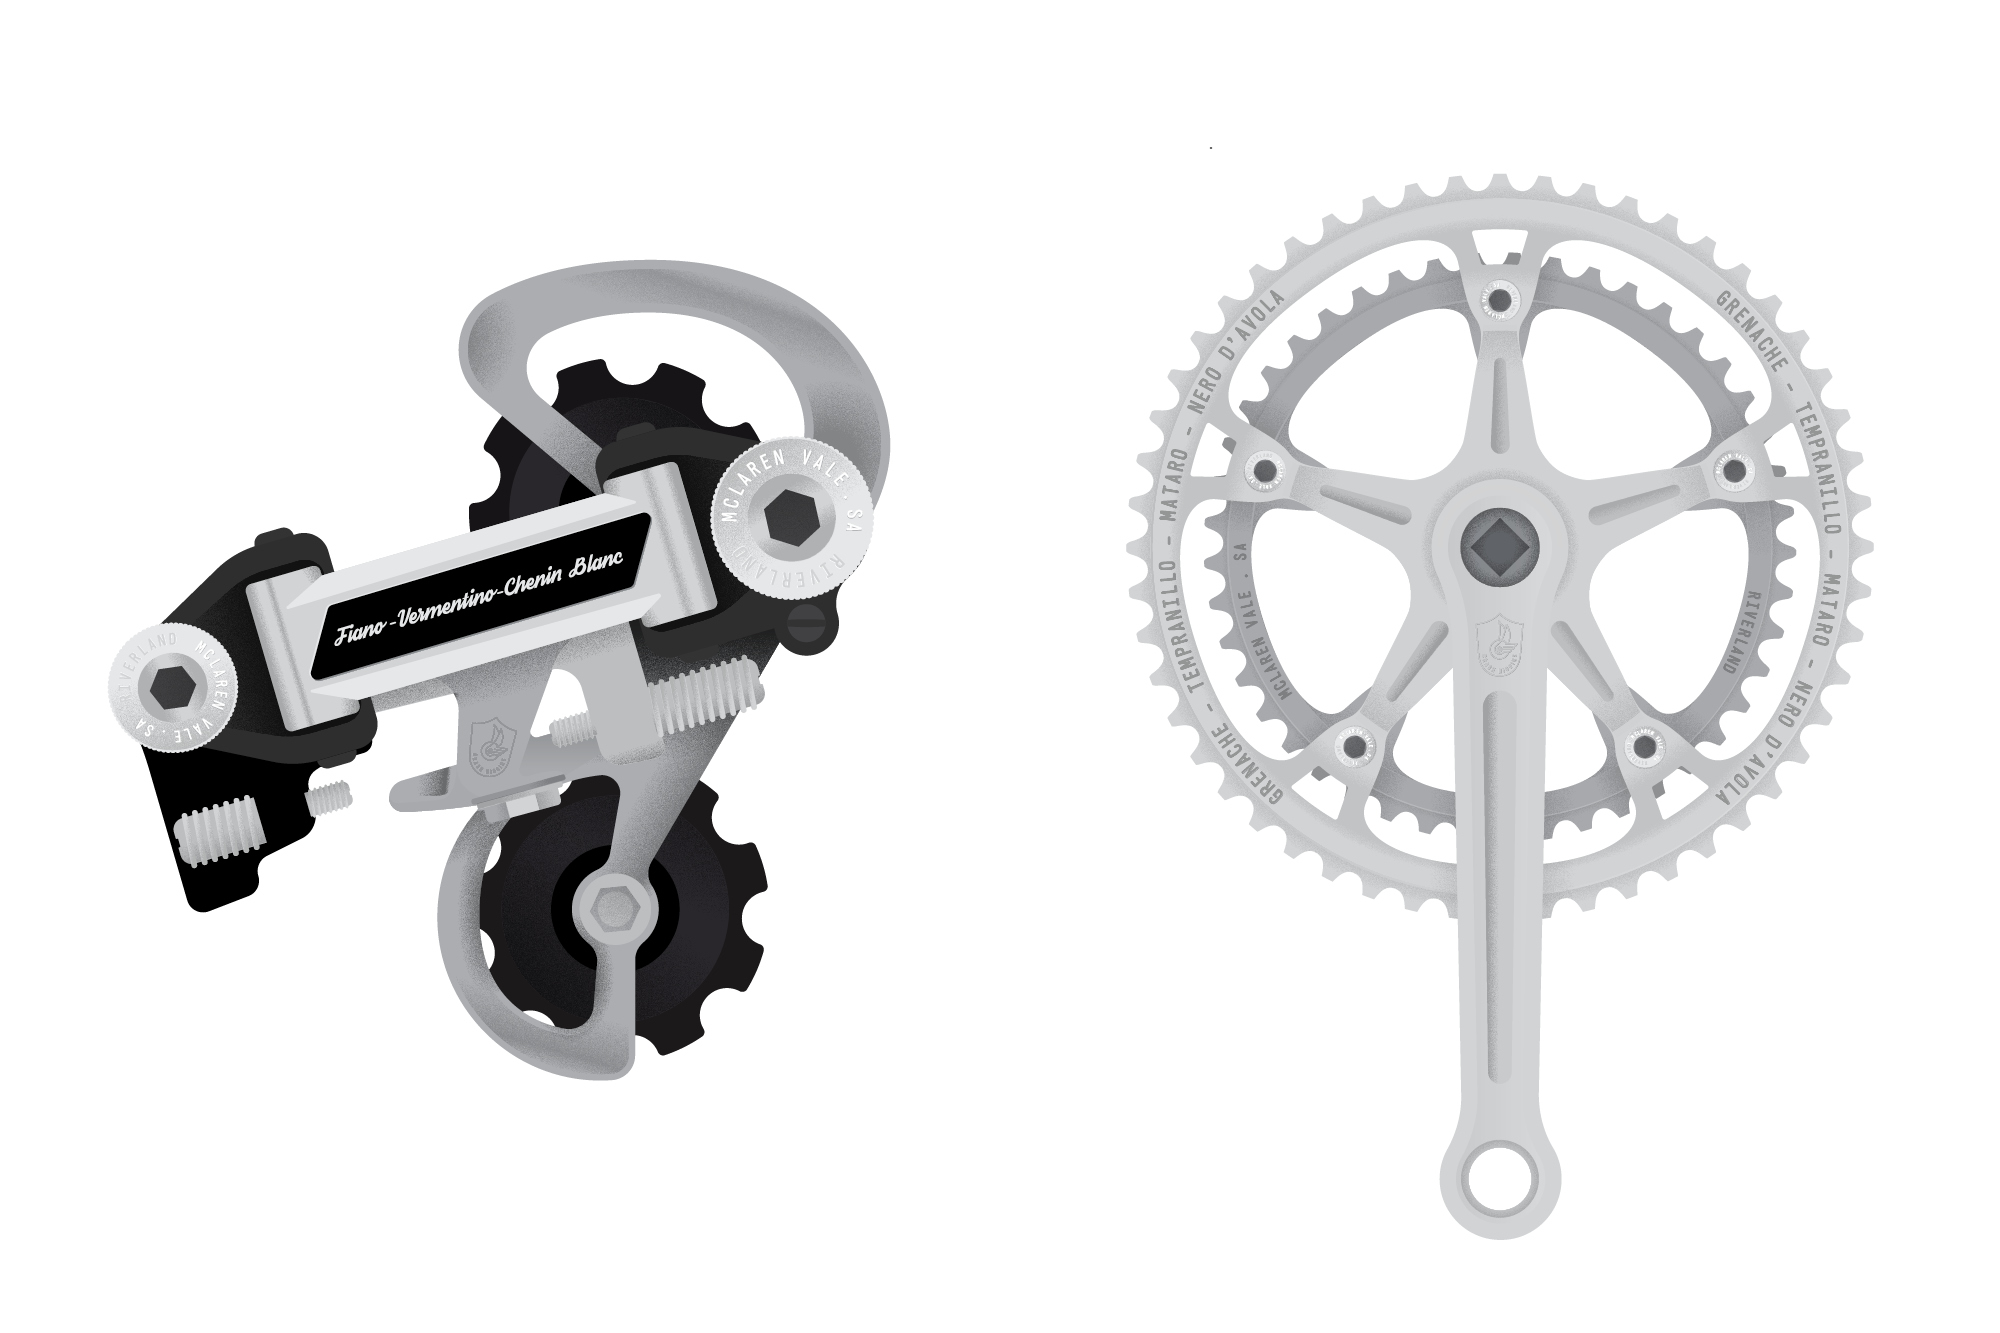 Final illustrations for Brash Higgins Gear and Derailer